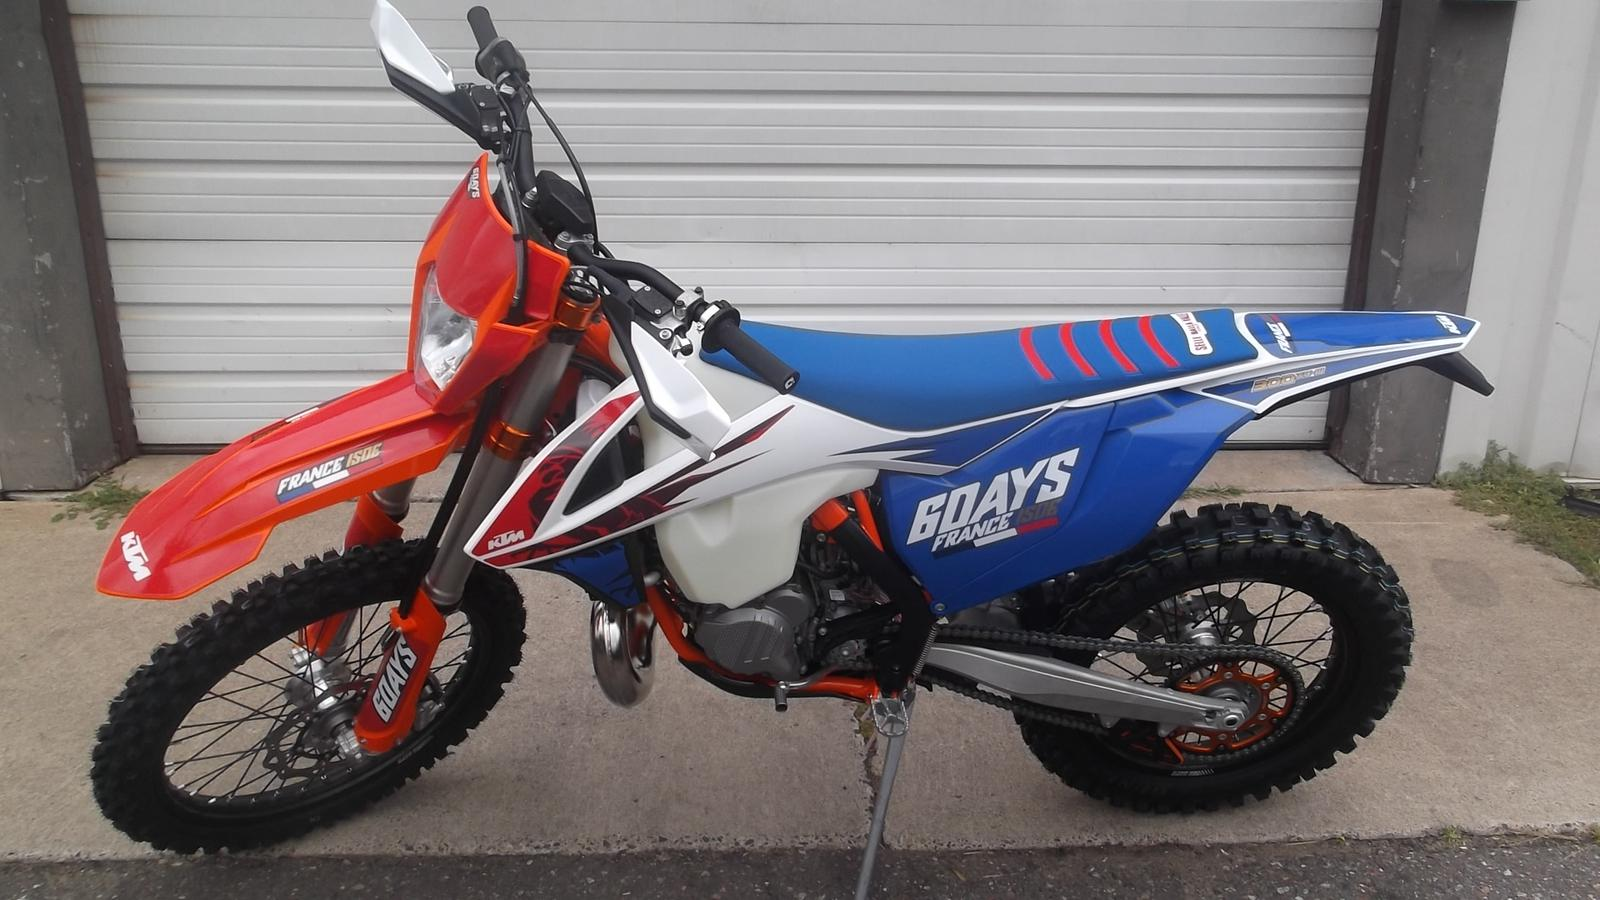 2018 Ktm 300 Xc W Six Days For In Cambridge Mn Larson S Cycle Inc 763 689 2760